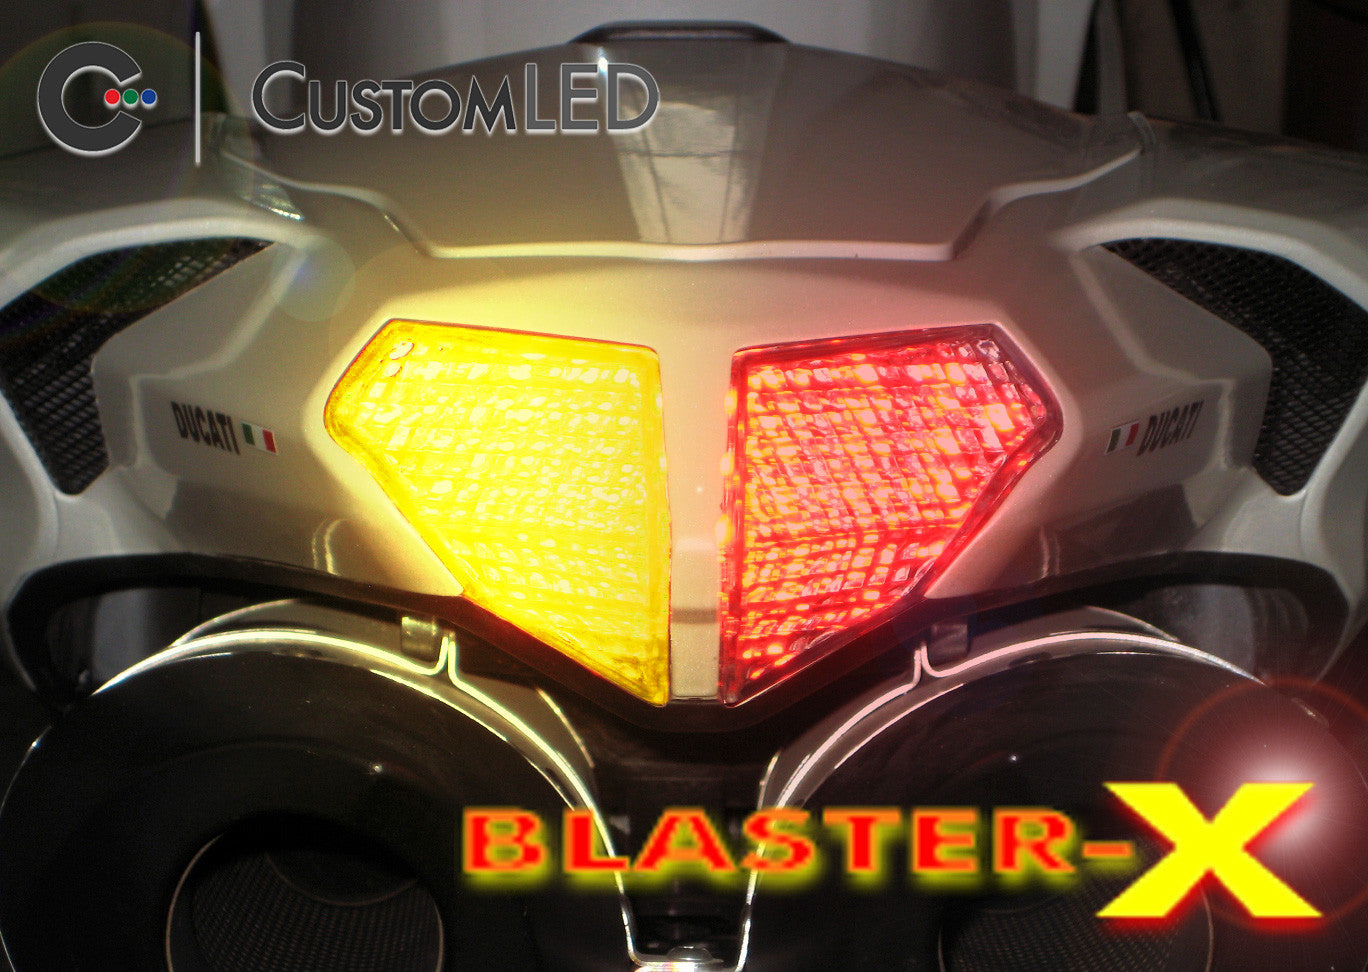 2008 2013 Ducati 848 Blaster X Integrated Led Tail Light Custom Wiring Diagram For Years 2009 2010 2011 2012